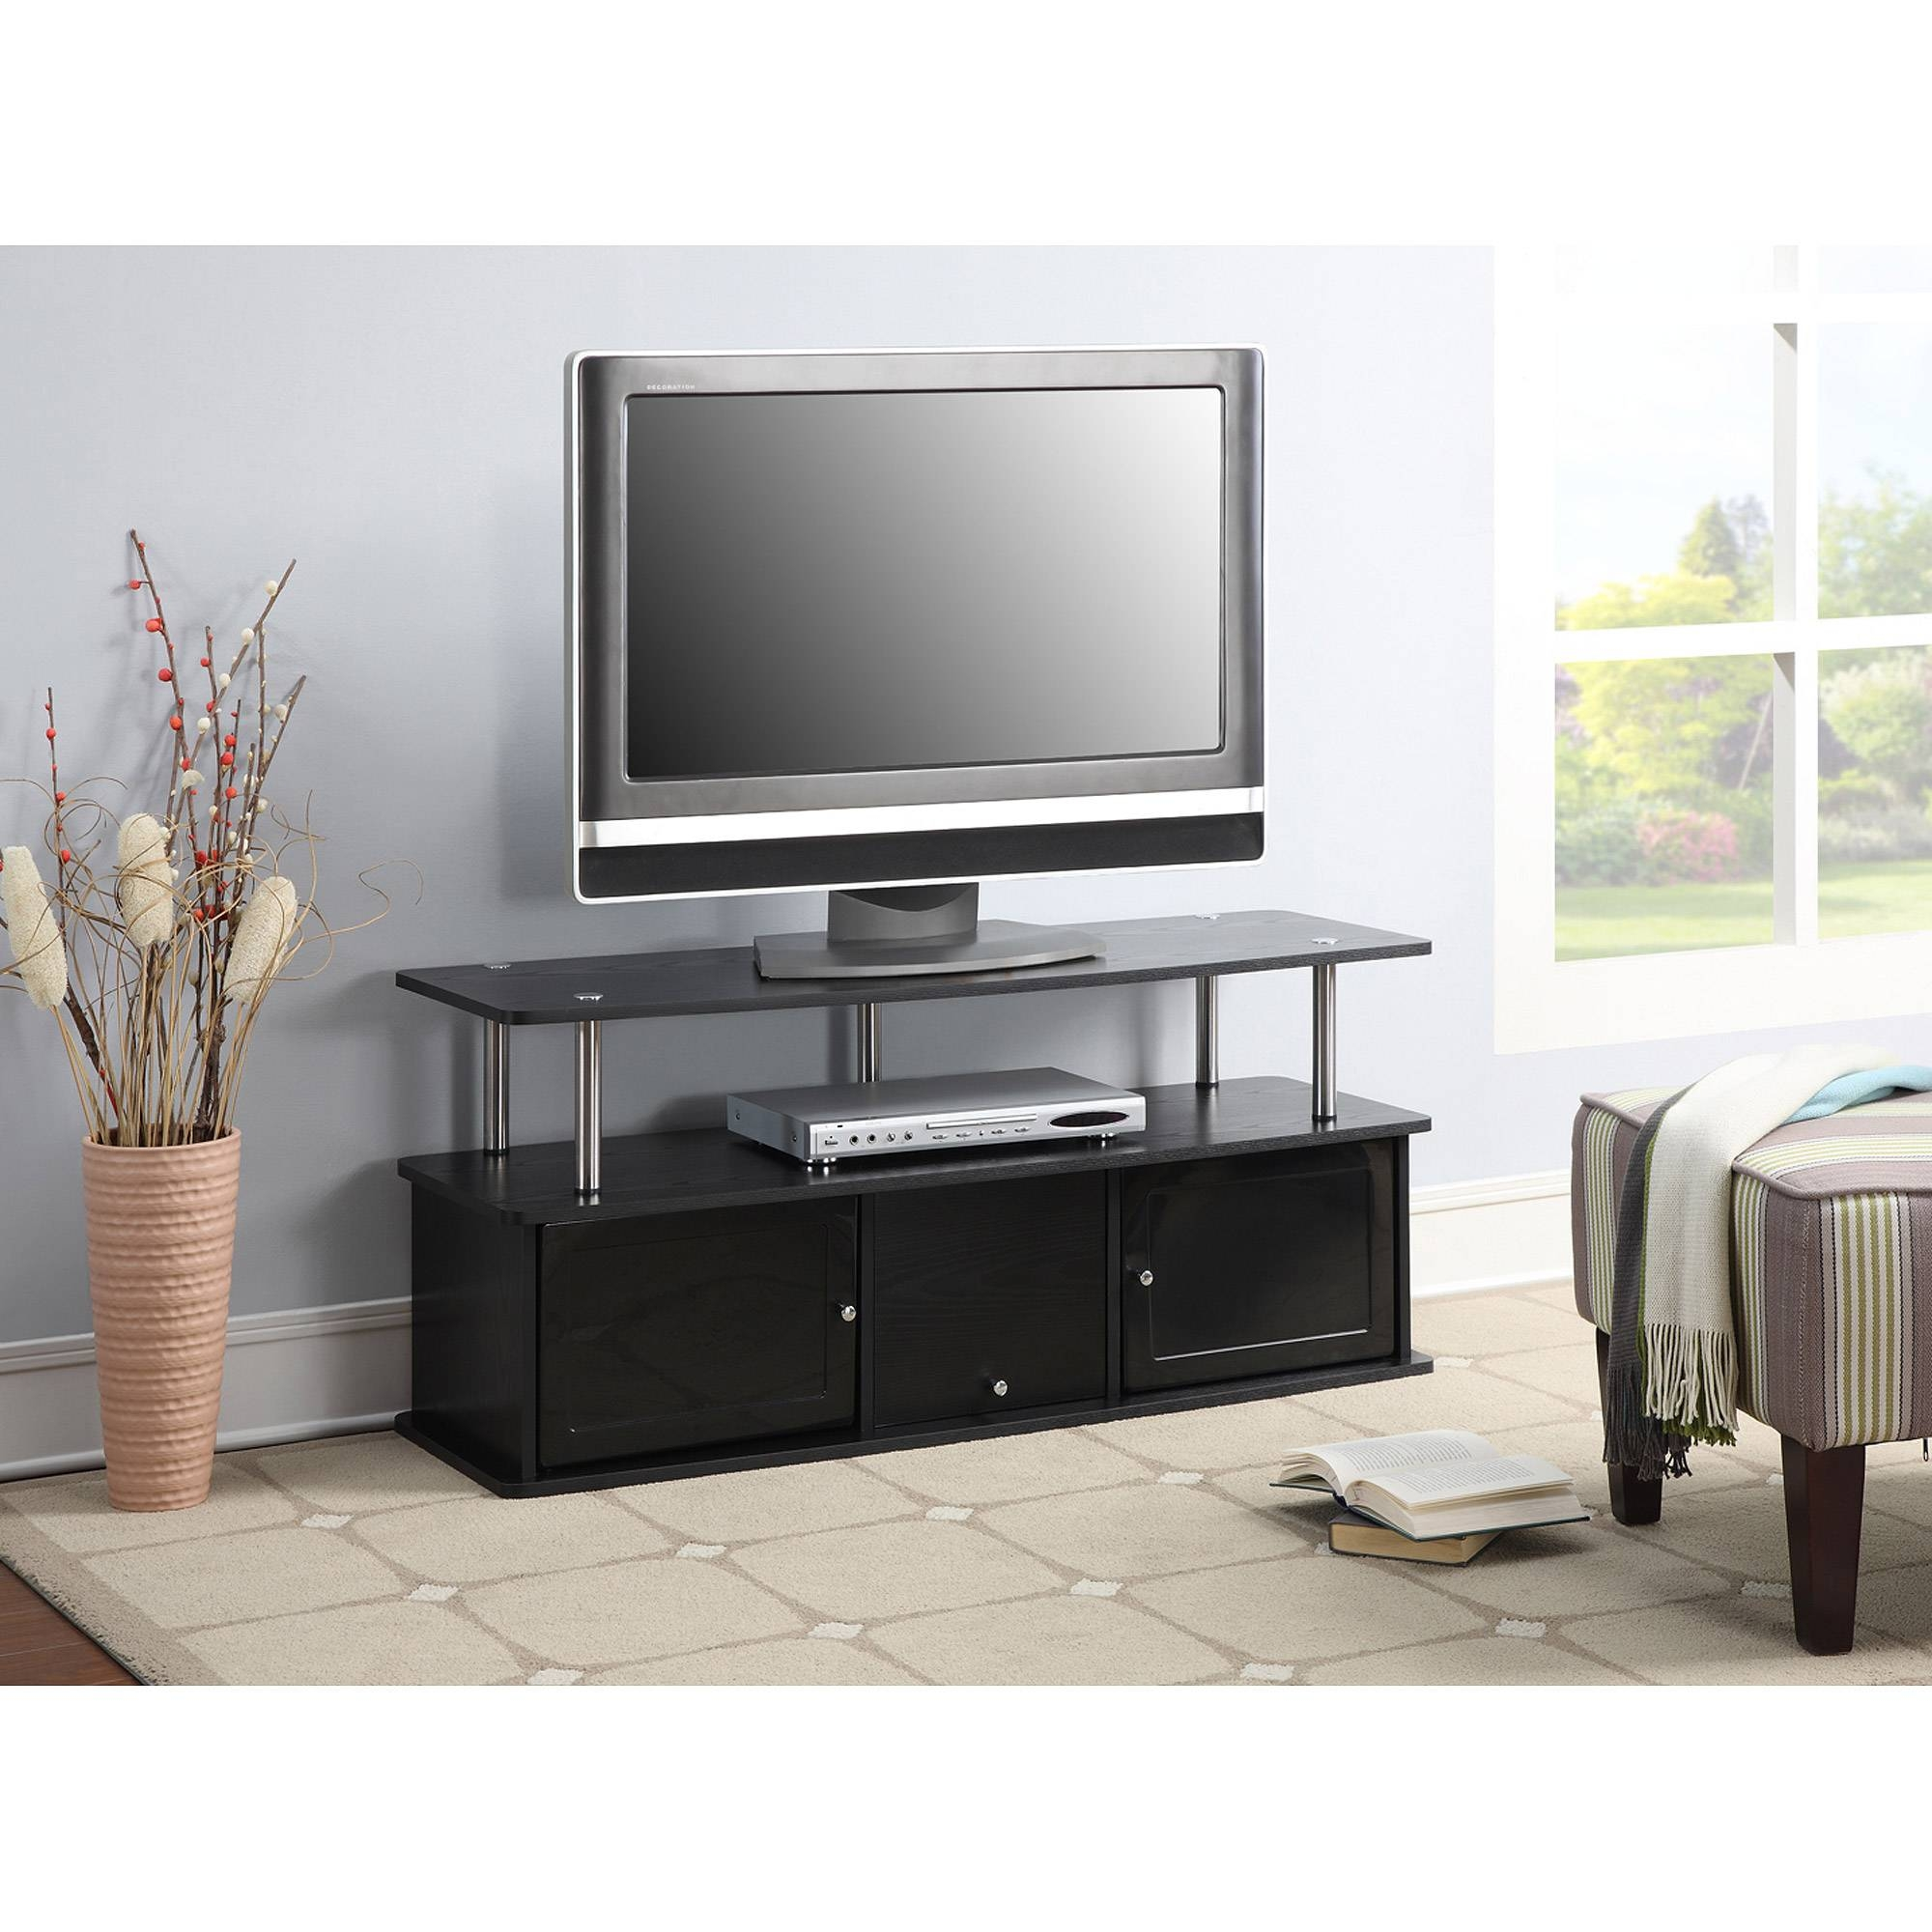 Convenience Concepts Designs2Go Cherry Tv Stand With 3 Cabinets within Cherry Tv Stands (Image 6 of 15)